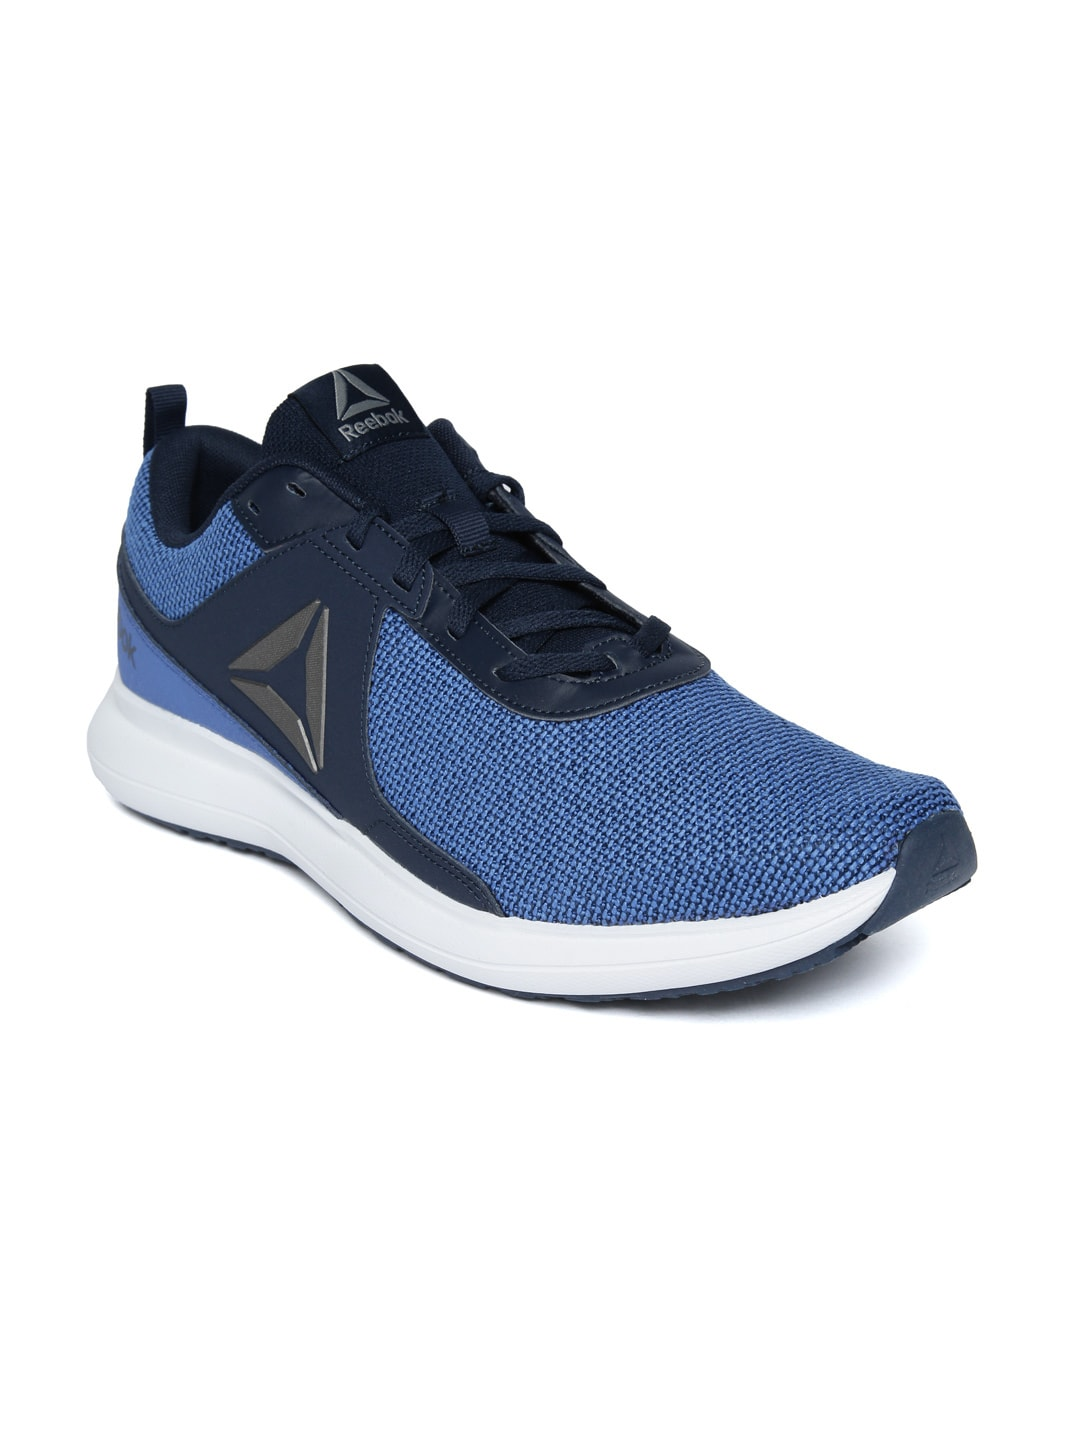 premium selection b5fea d5f2d Sports Shoes for Men - Buy Men Sports Shoes Online in India - Myntra